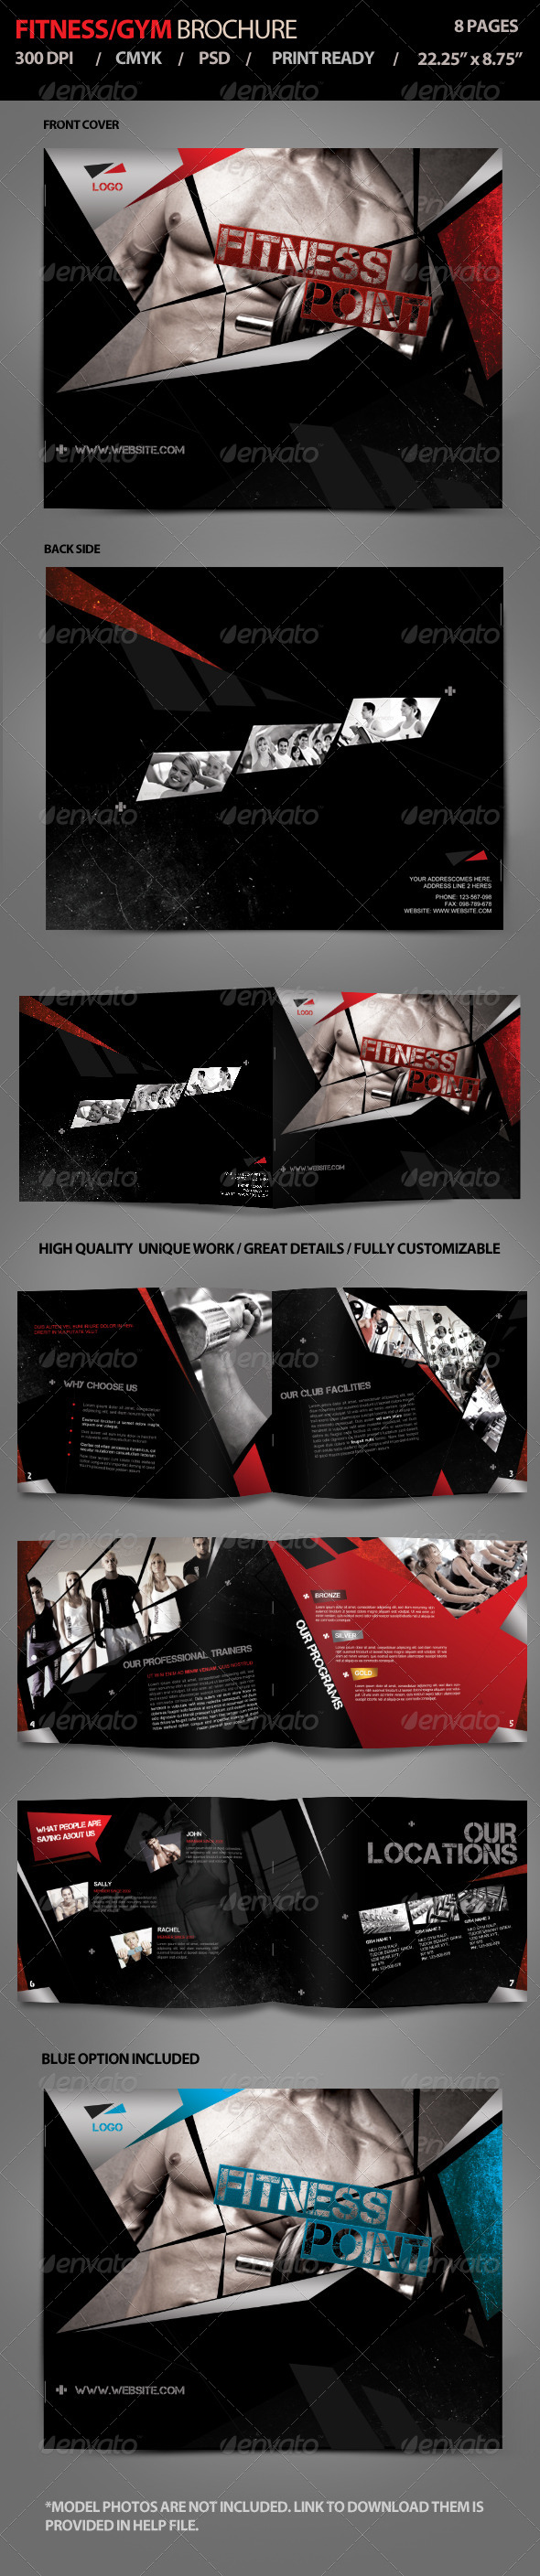 Fitness / Gym Brochure Vol1 - Brochures Print Templates